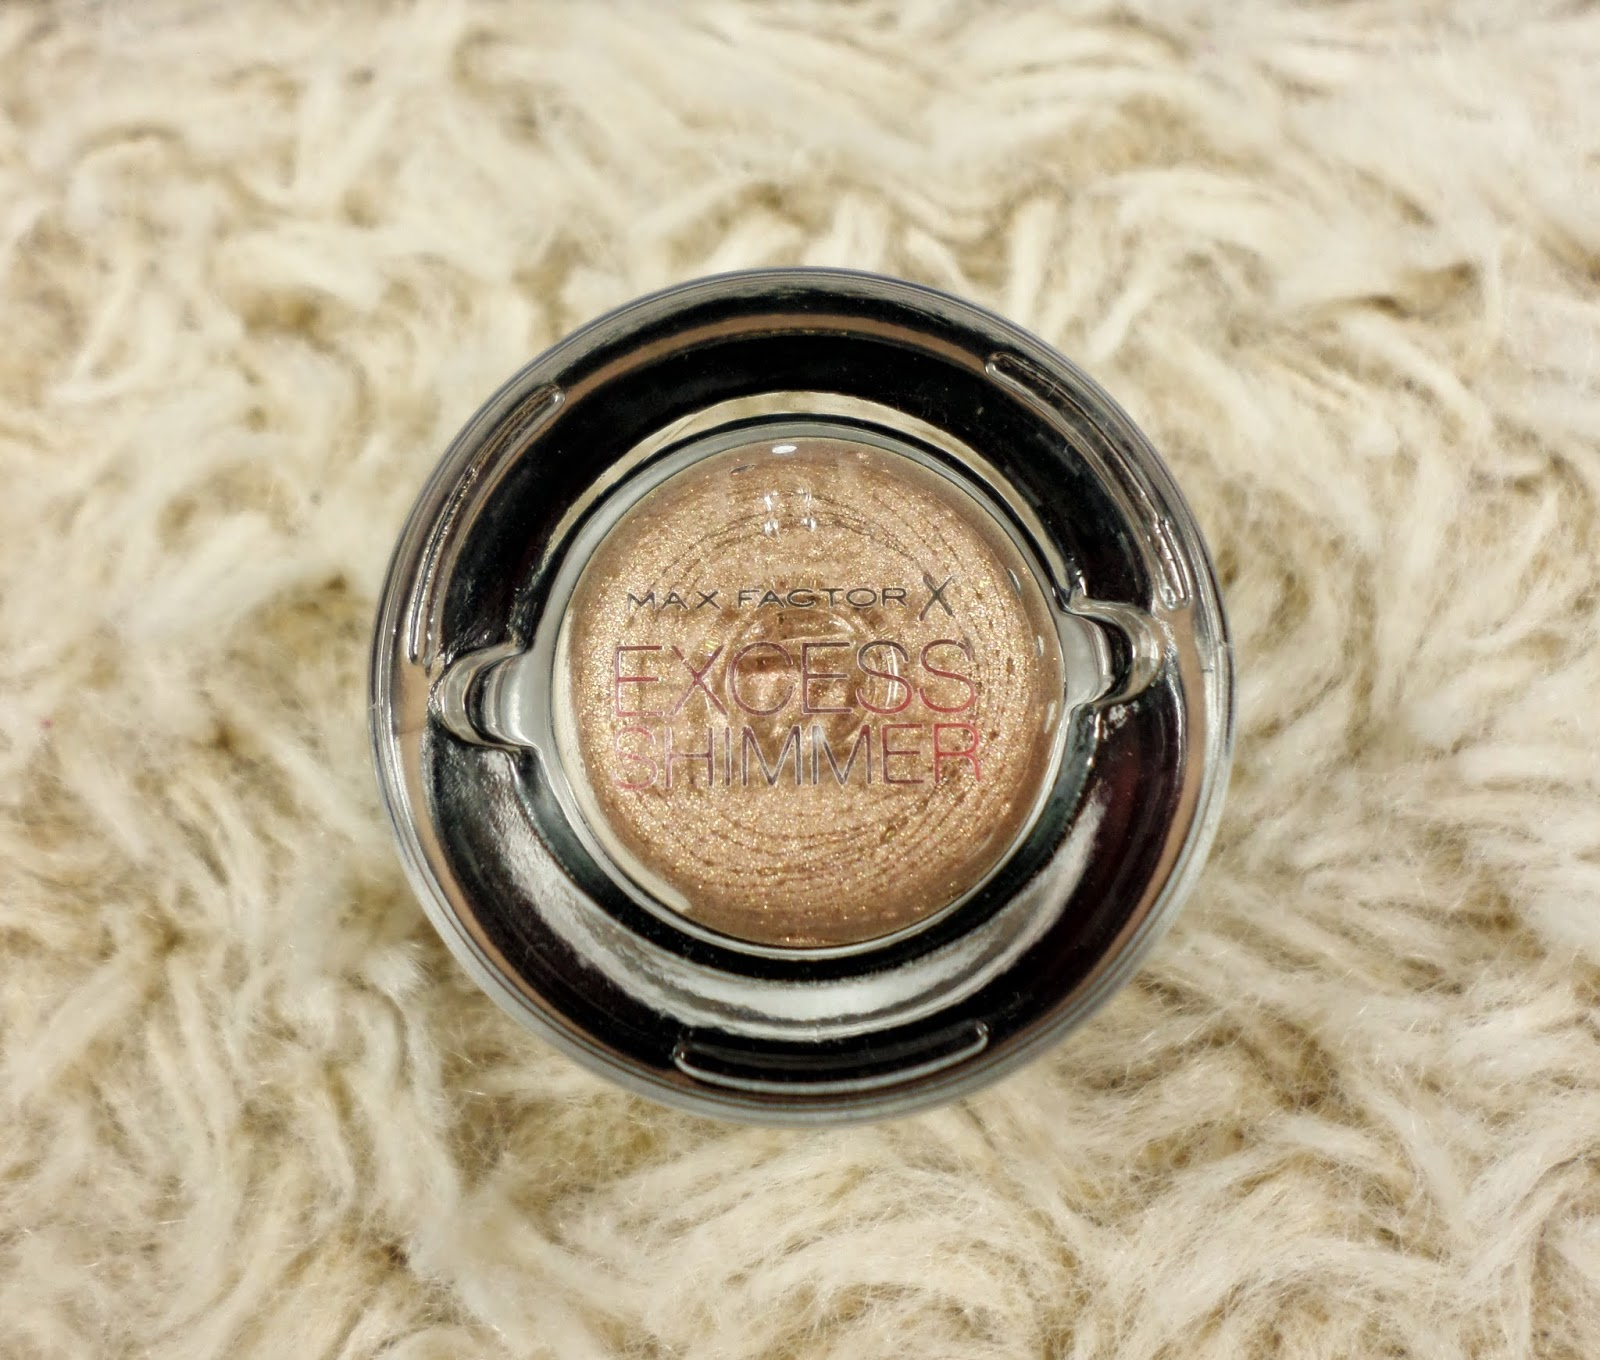 Max Factor Excess Shimmer Eyeshadow in 20 Copper